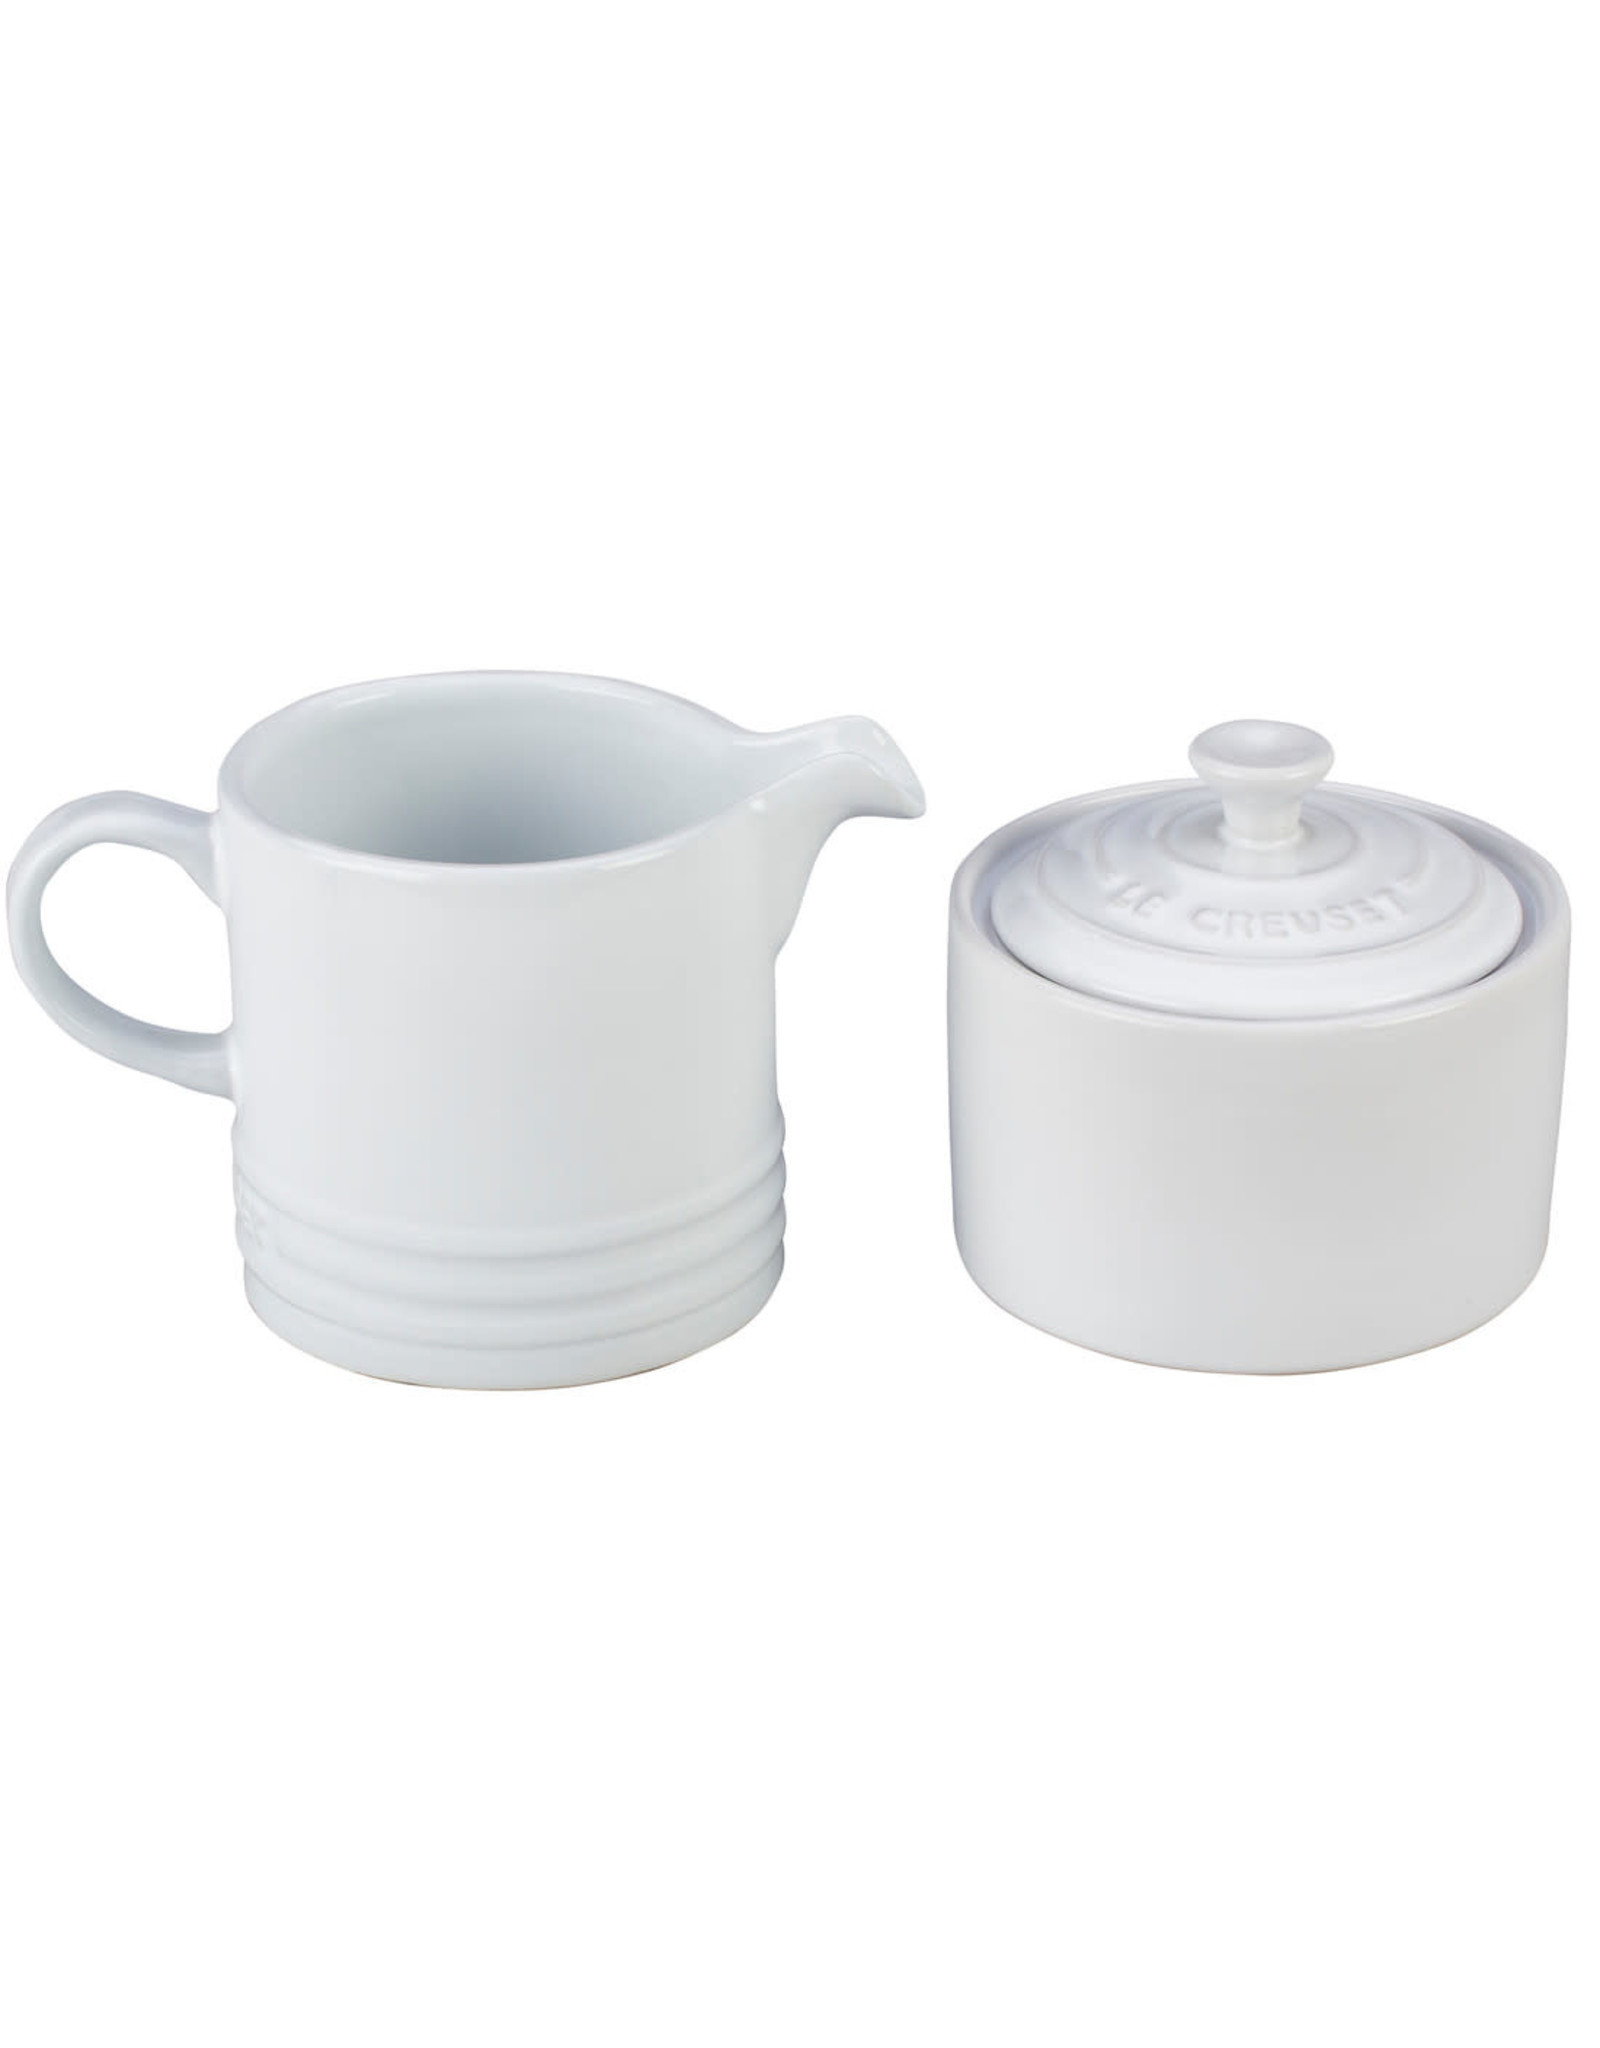 Le Creuset Le Creuset Cream & Sugar Set - White